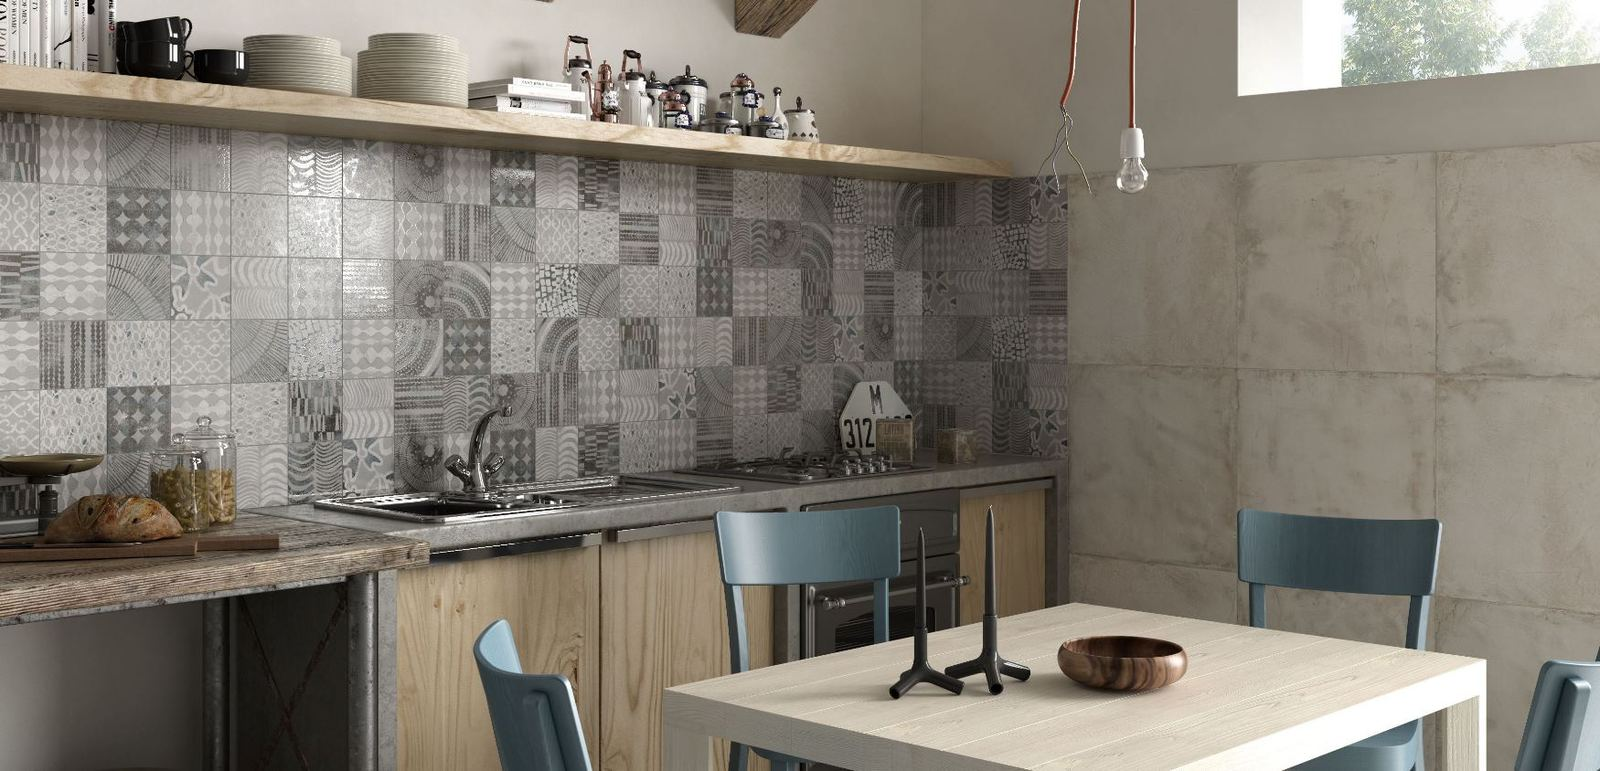 kitchen backsplash grey monochrome patchwork patterns ricchetti white cabinets grey backsplash kitchen subway tile outlet